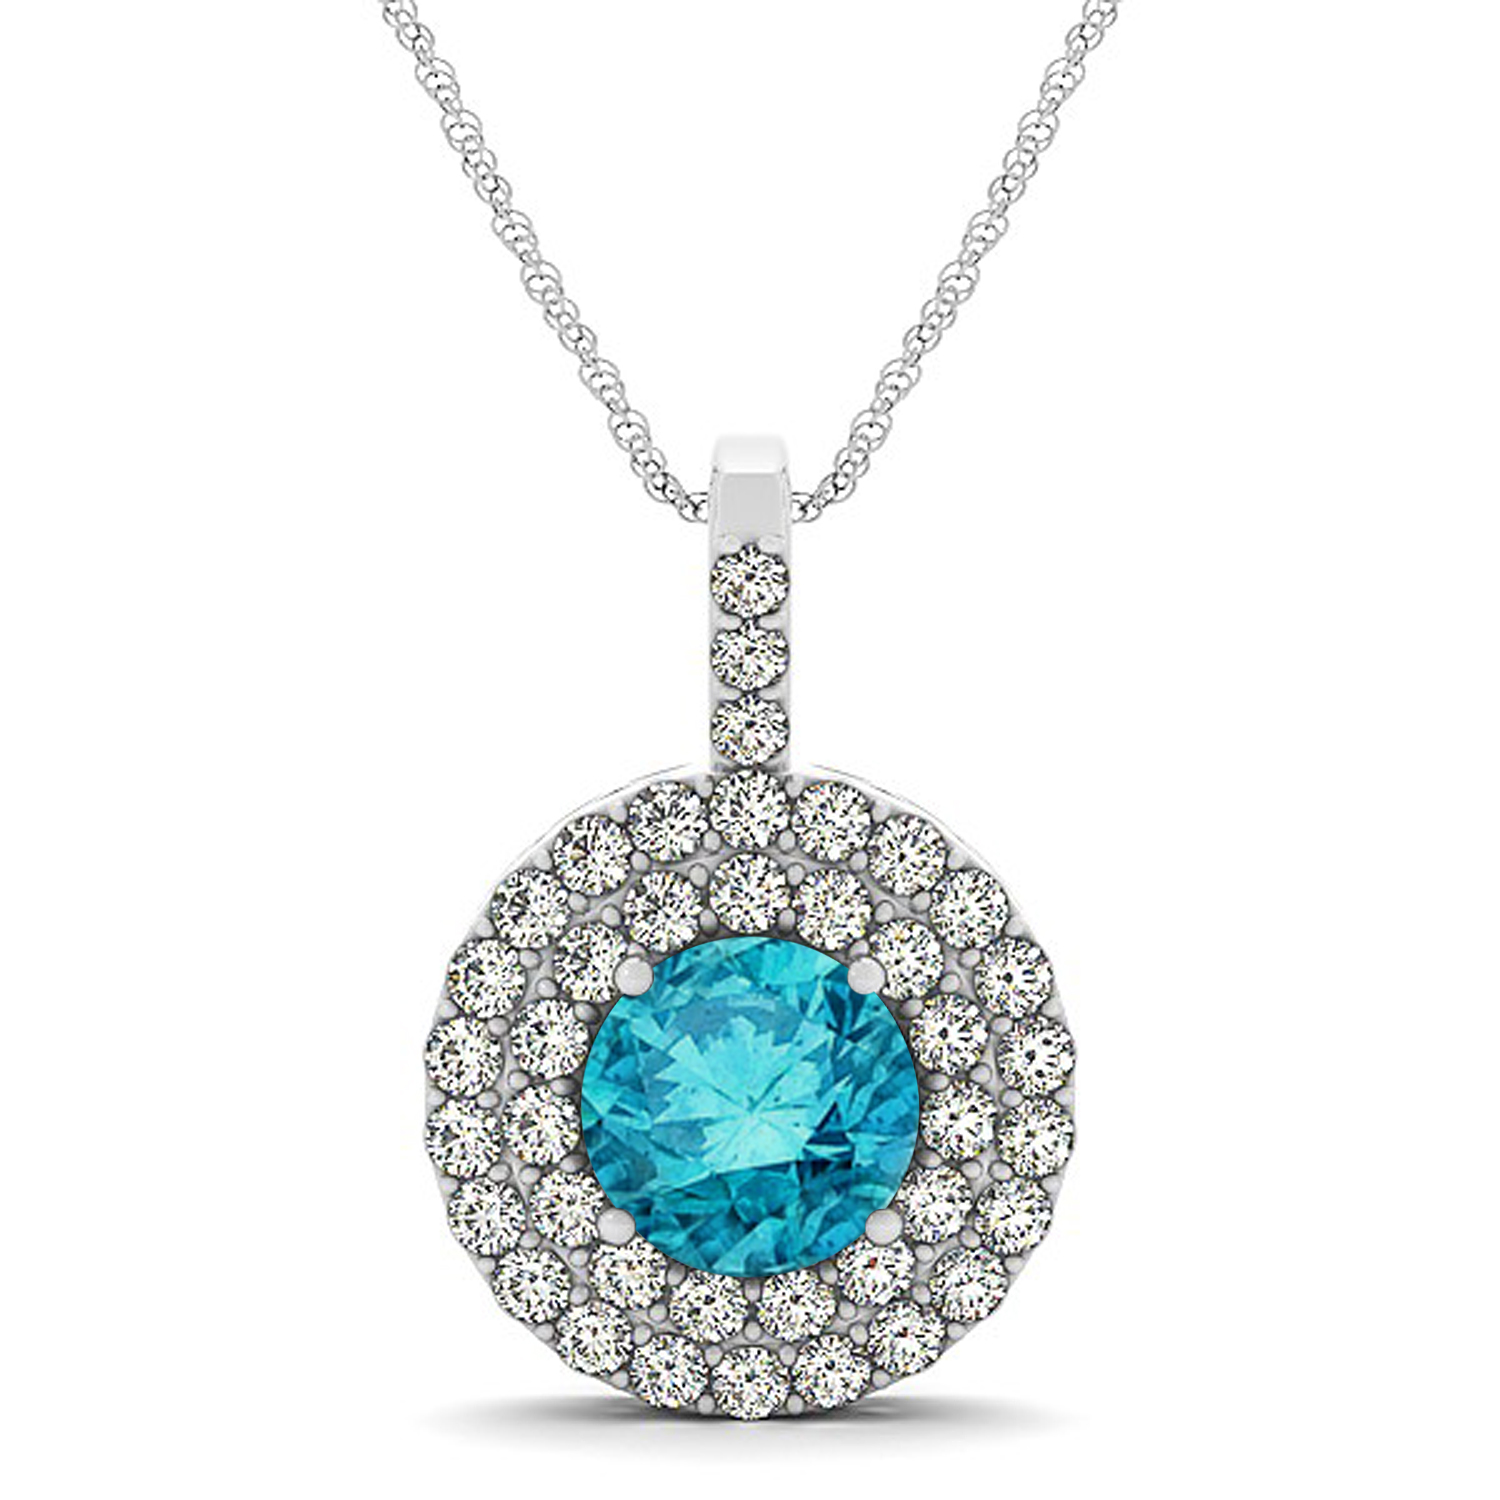 2239db3cc Blue Diamond & Diamond Drop Double Halo Pendant 14k White Gold 1.75ct -  NG5484